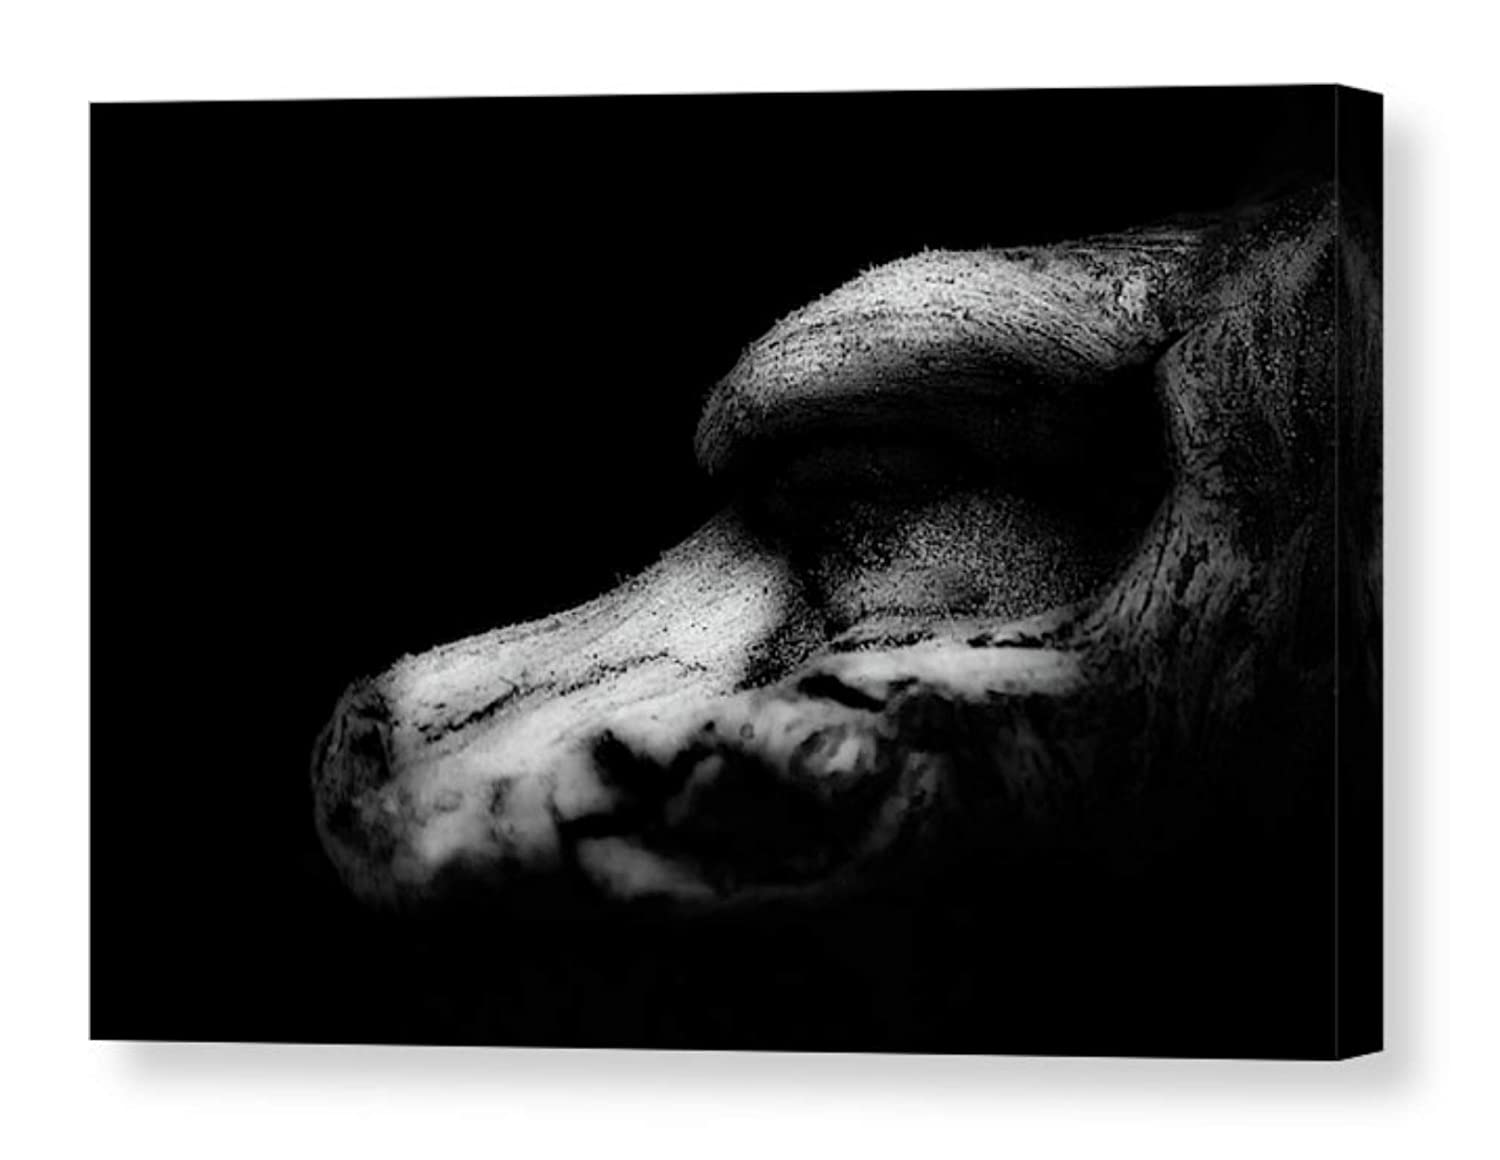 Amazon Com Contemporary Photographic Print On Canvas Minimalist Black And White Abstract Photography Nature Photo Dark Wall Art Modern Home Decor Ready To Hang 8x12 12x18 16x24 20x30 Handmade